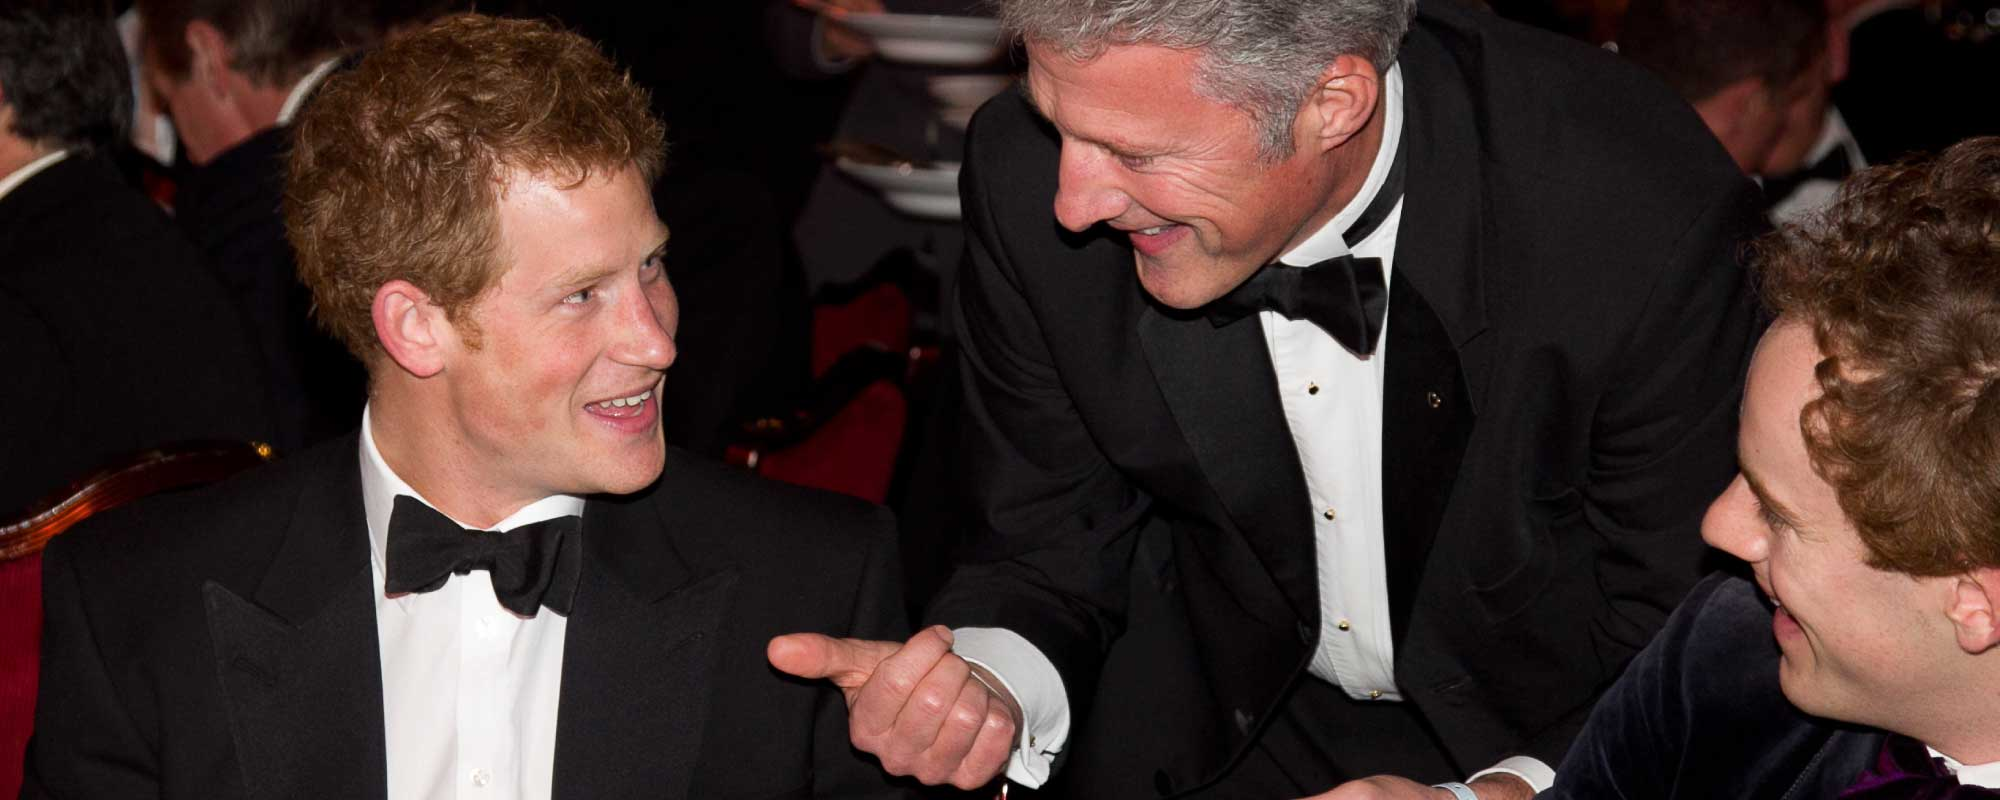 David Redfearn Magician and Prince Harry